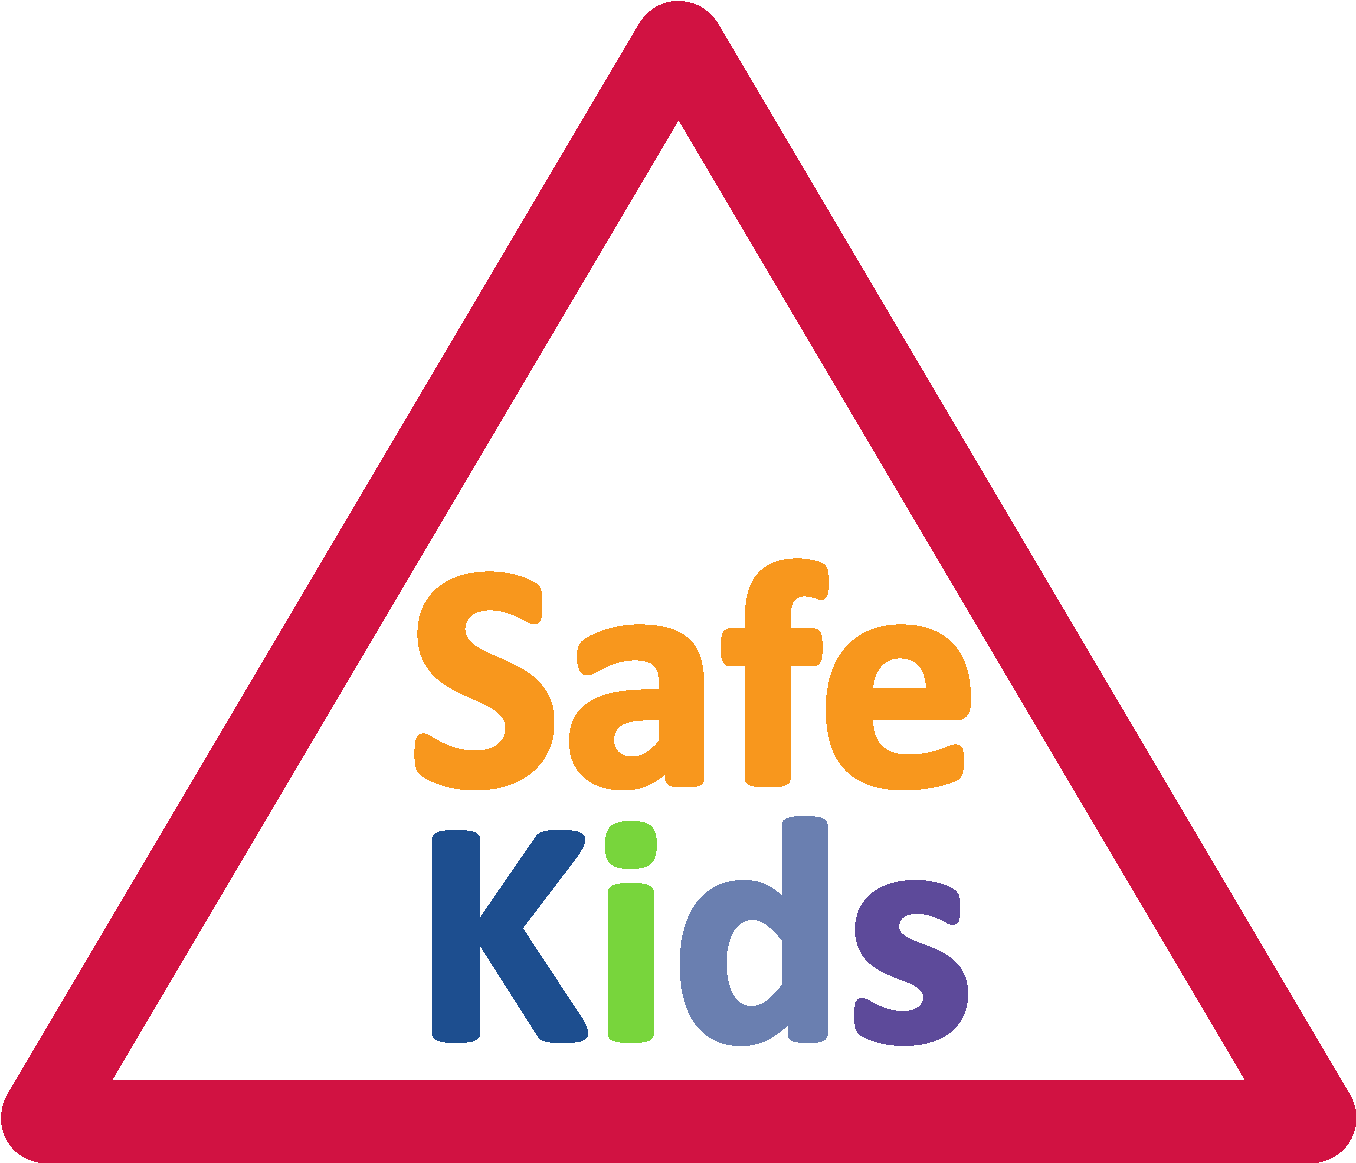 Kids being safe in the classroom clipart picture library download Electricity Clipart Classroom Safety - Safe Kids - Png ... picture library download